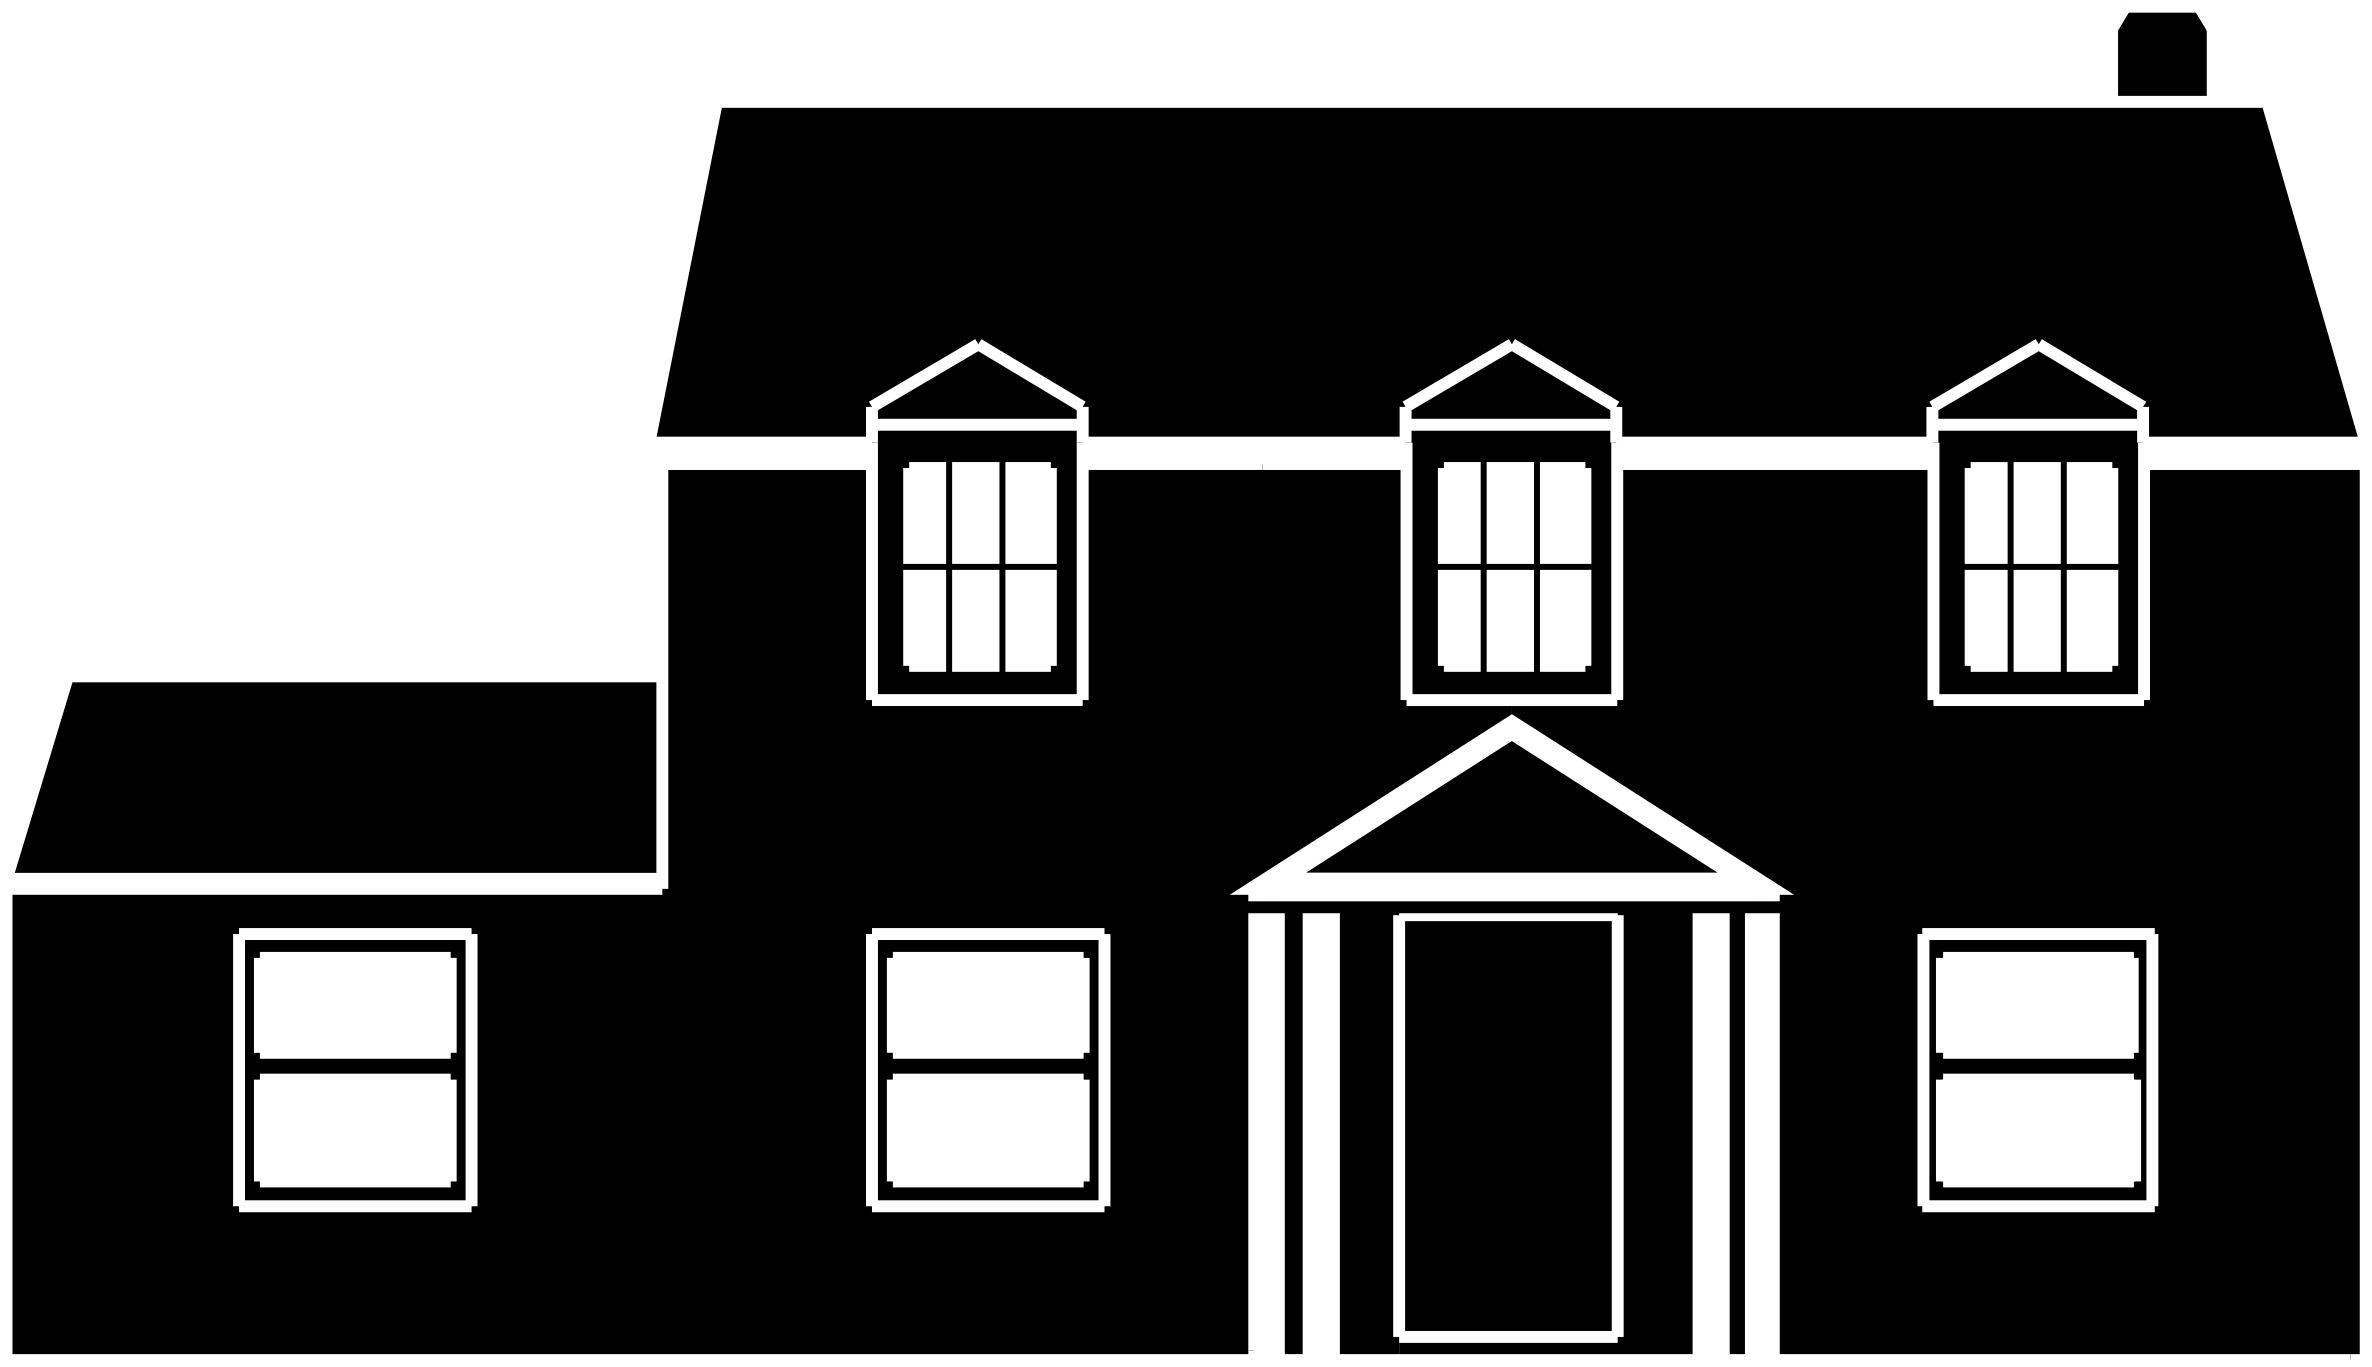 House painting clipart black and white image royalty free download new-black-and-white-house - Interior for House : Interior for House image royalty free download